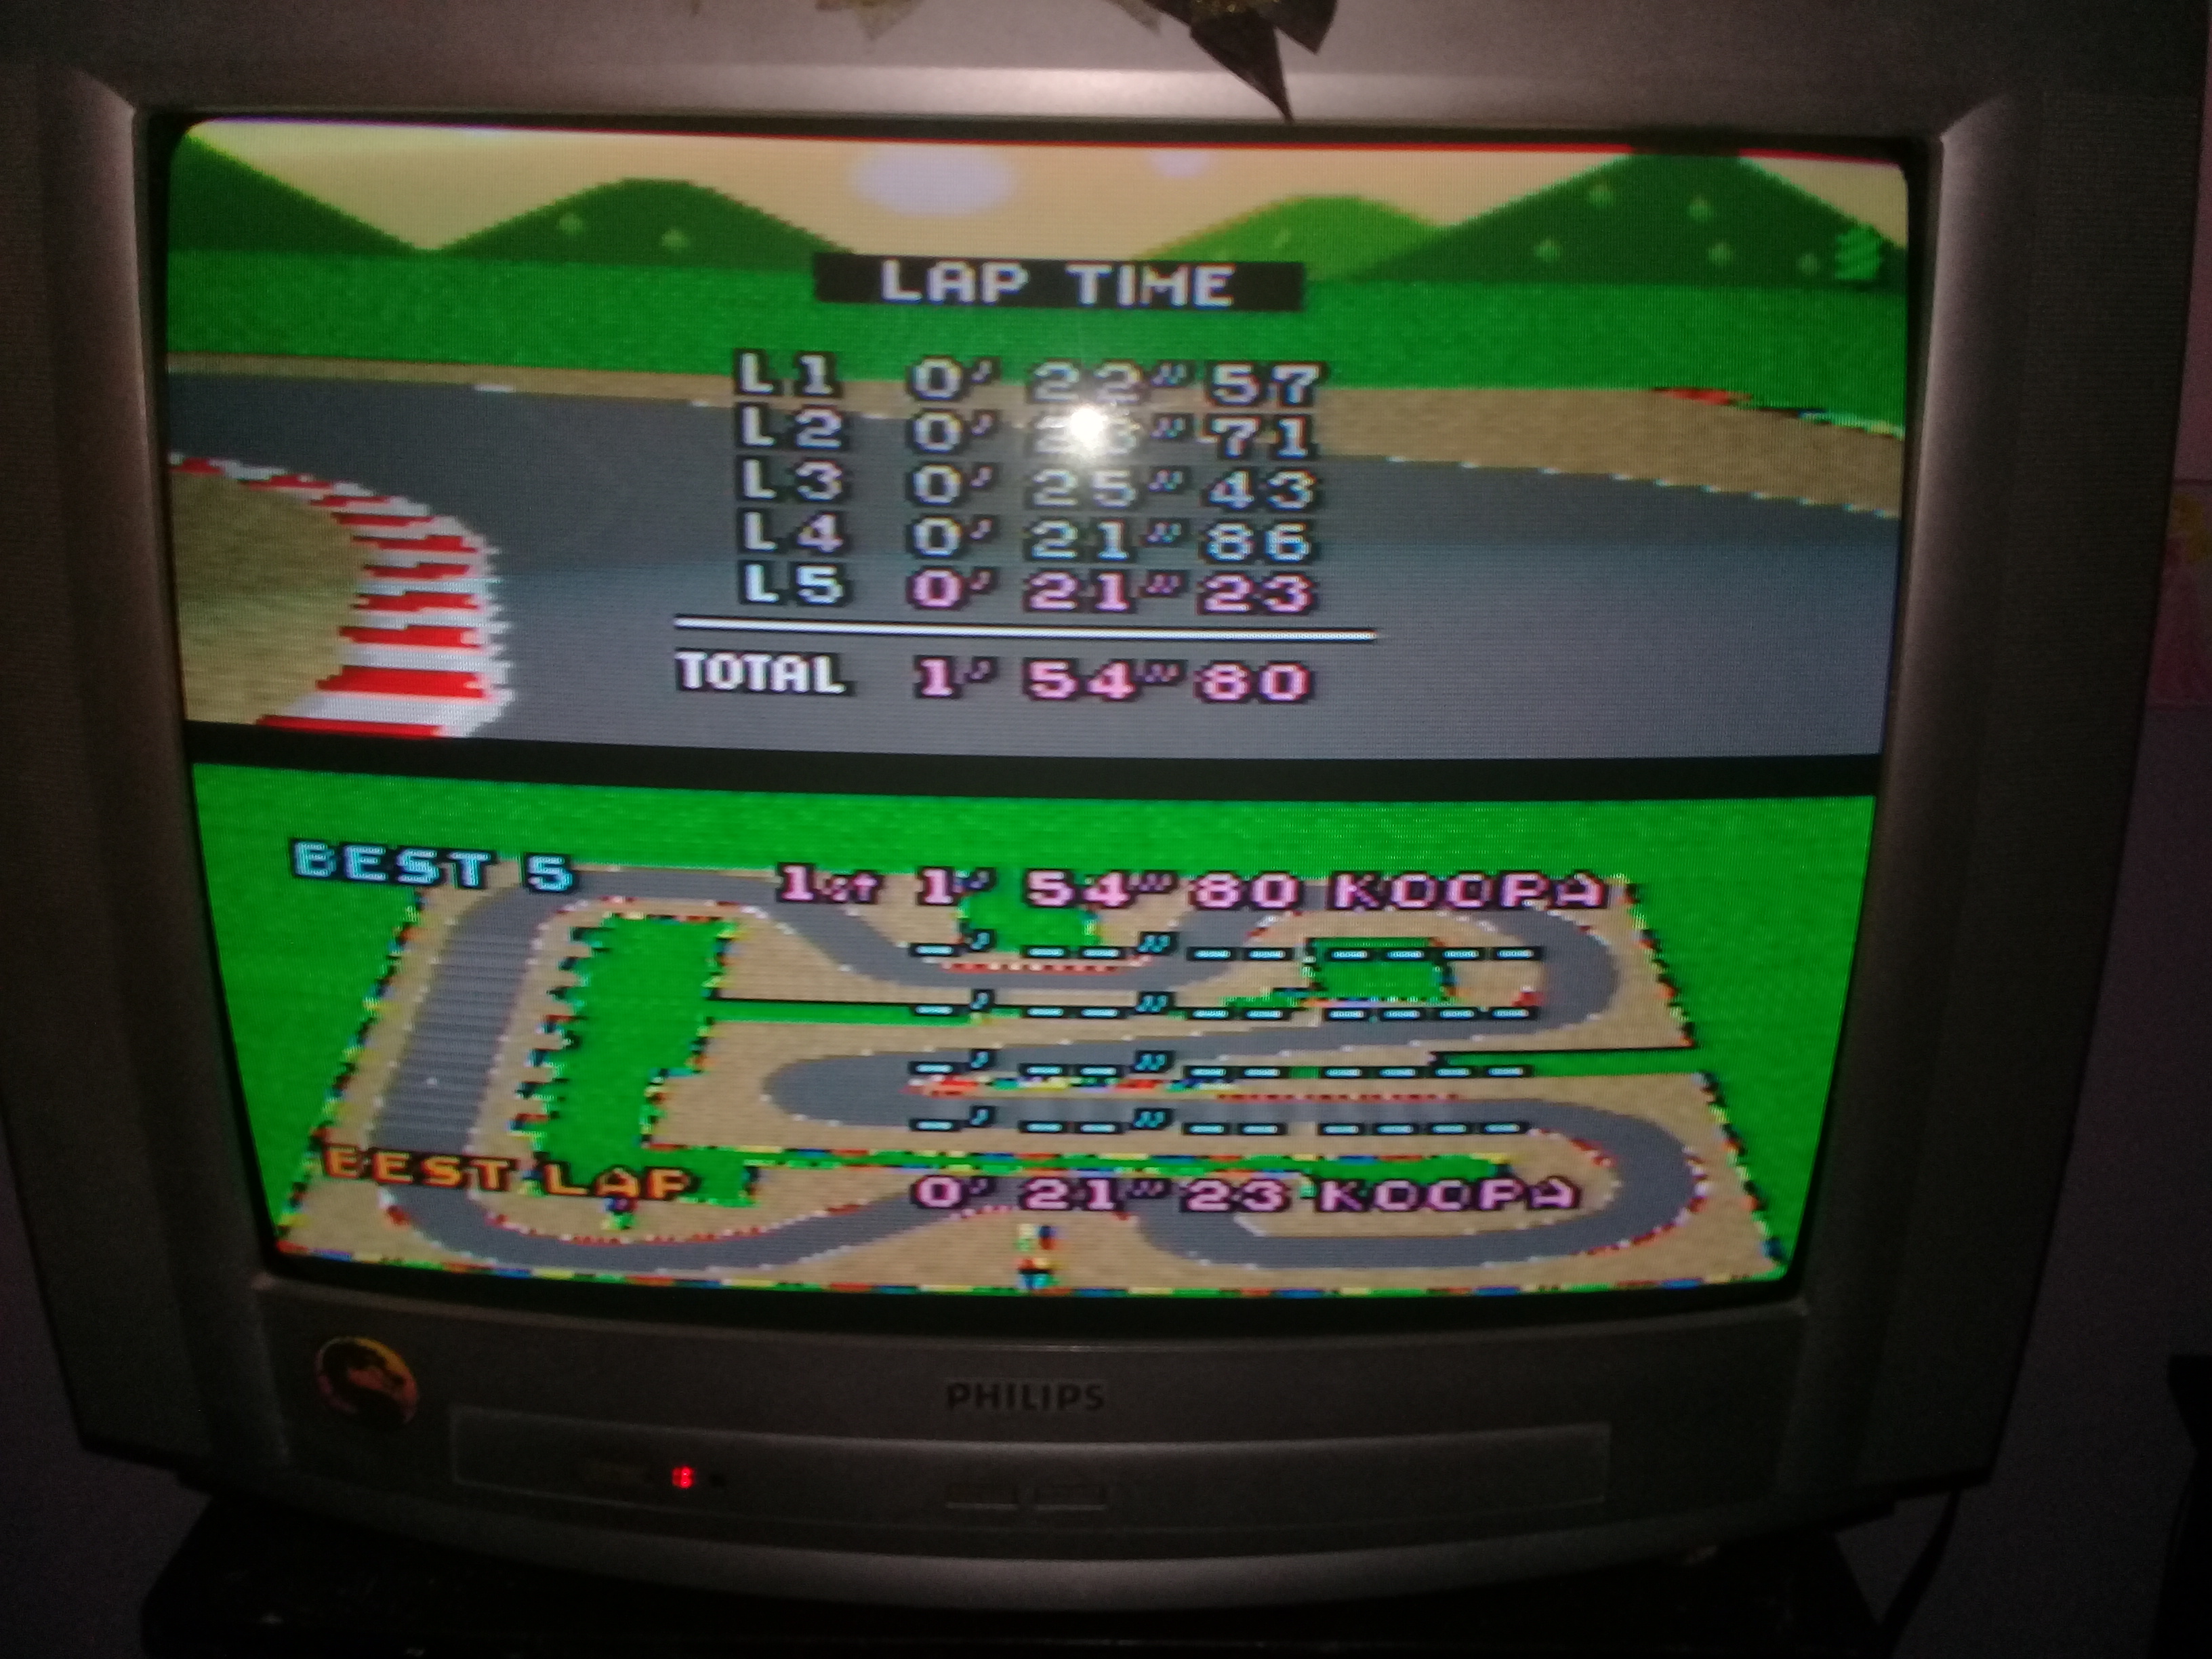 omargeddon: Super Mario Kart: Mario Circuit 3 [Time Trial] [Lap Time] (SNES/Super Famicom) 0:00:21.23 points on 2020-05-06 20:29:01